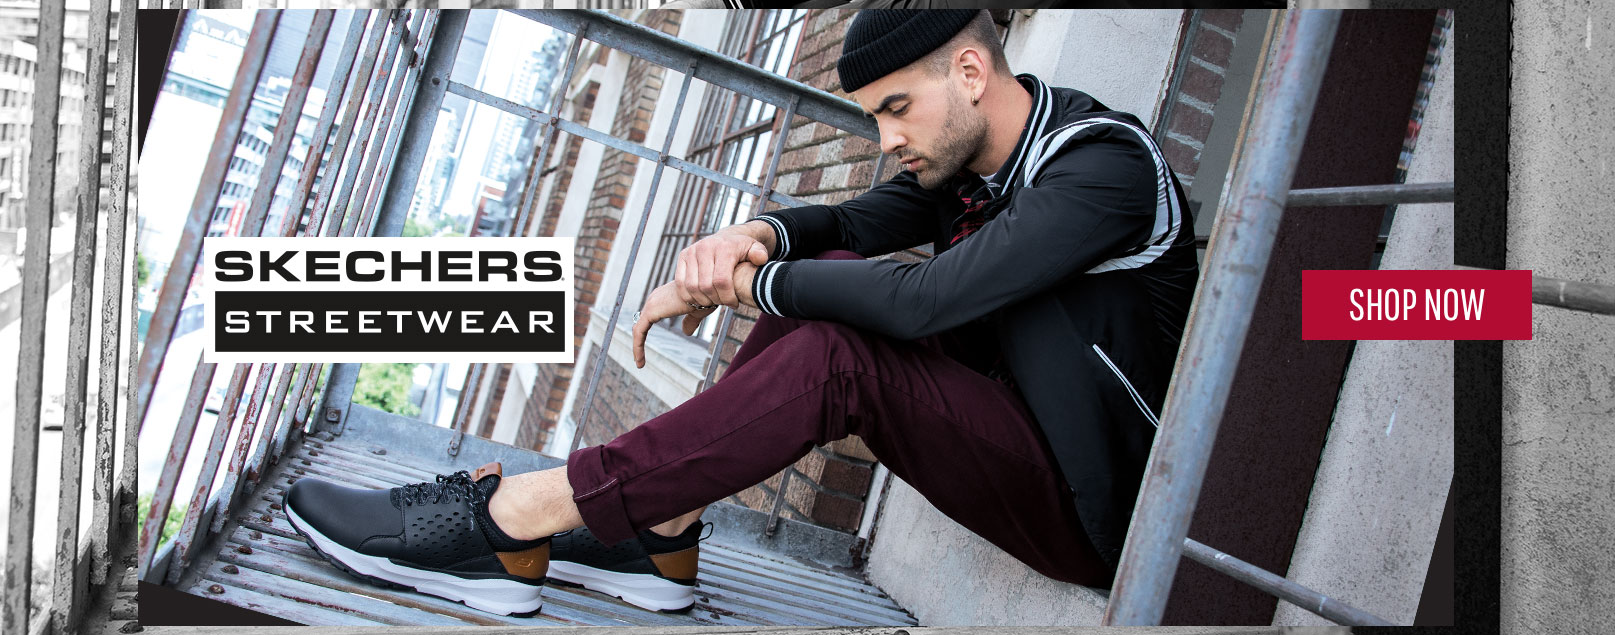 Get a cool urban-inspired style with amazing comfort and wearability with Skechers Men's Streetwear collection.  Unique blends of fabrics, leathers and looks for versatile style and wearable comfort.